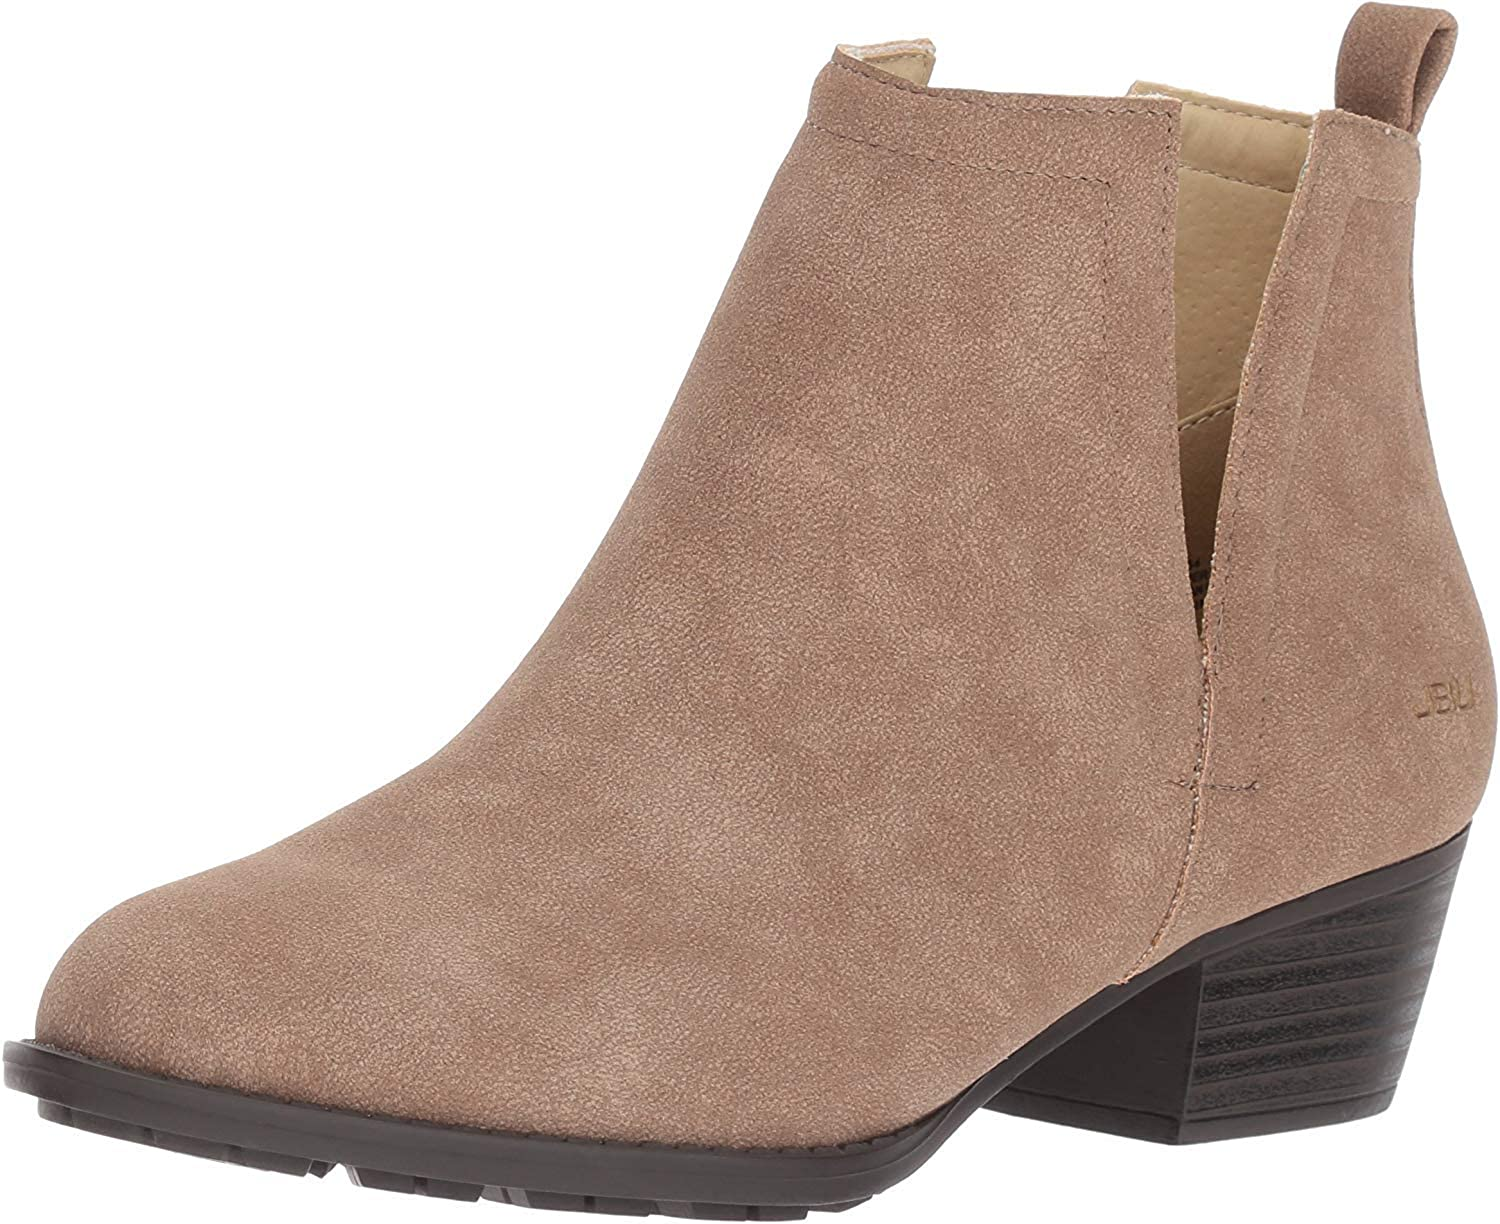 JBU by It is very popular Jambu 2021 autumn and winter new Women's Ankle Bootie Parker